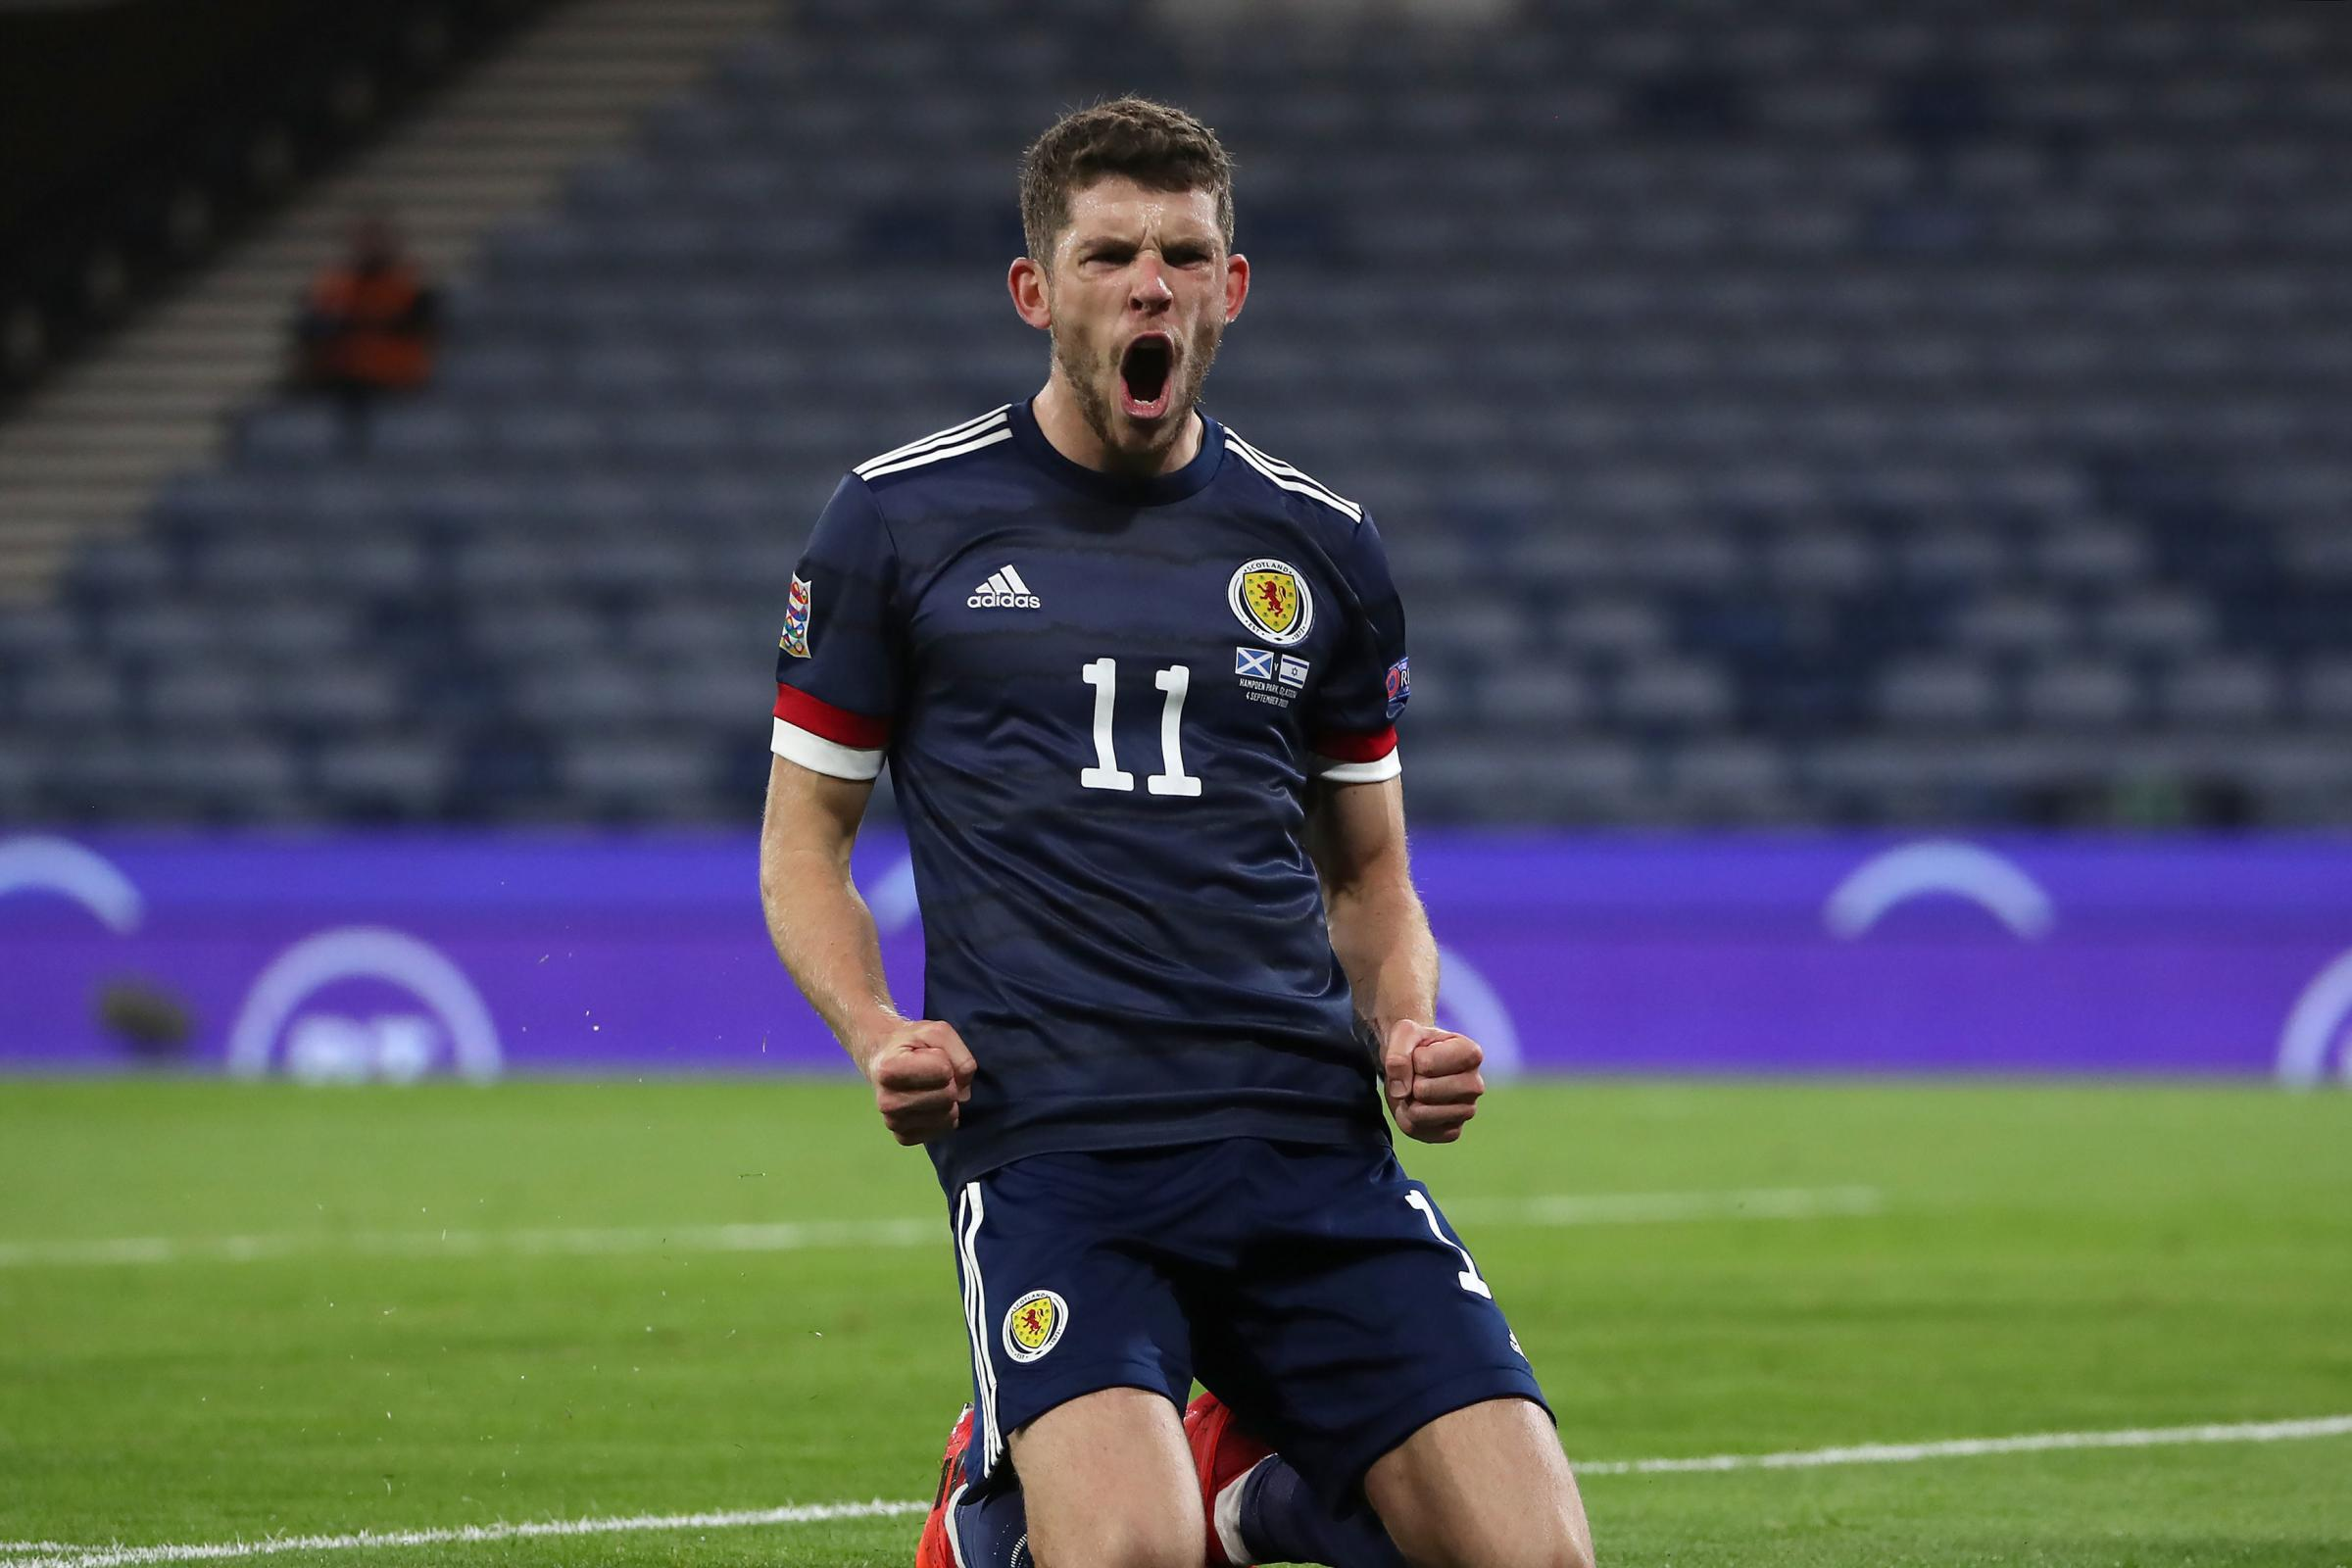 Scotland 1 Israel 1: How the Scotland players rated in disappointing Nations League draw